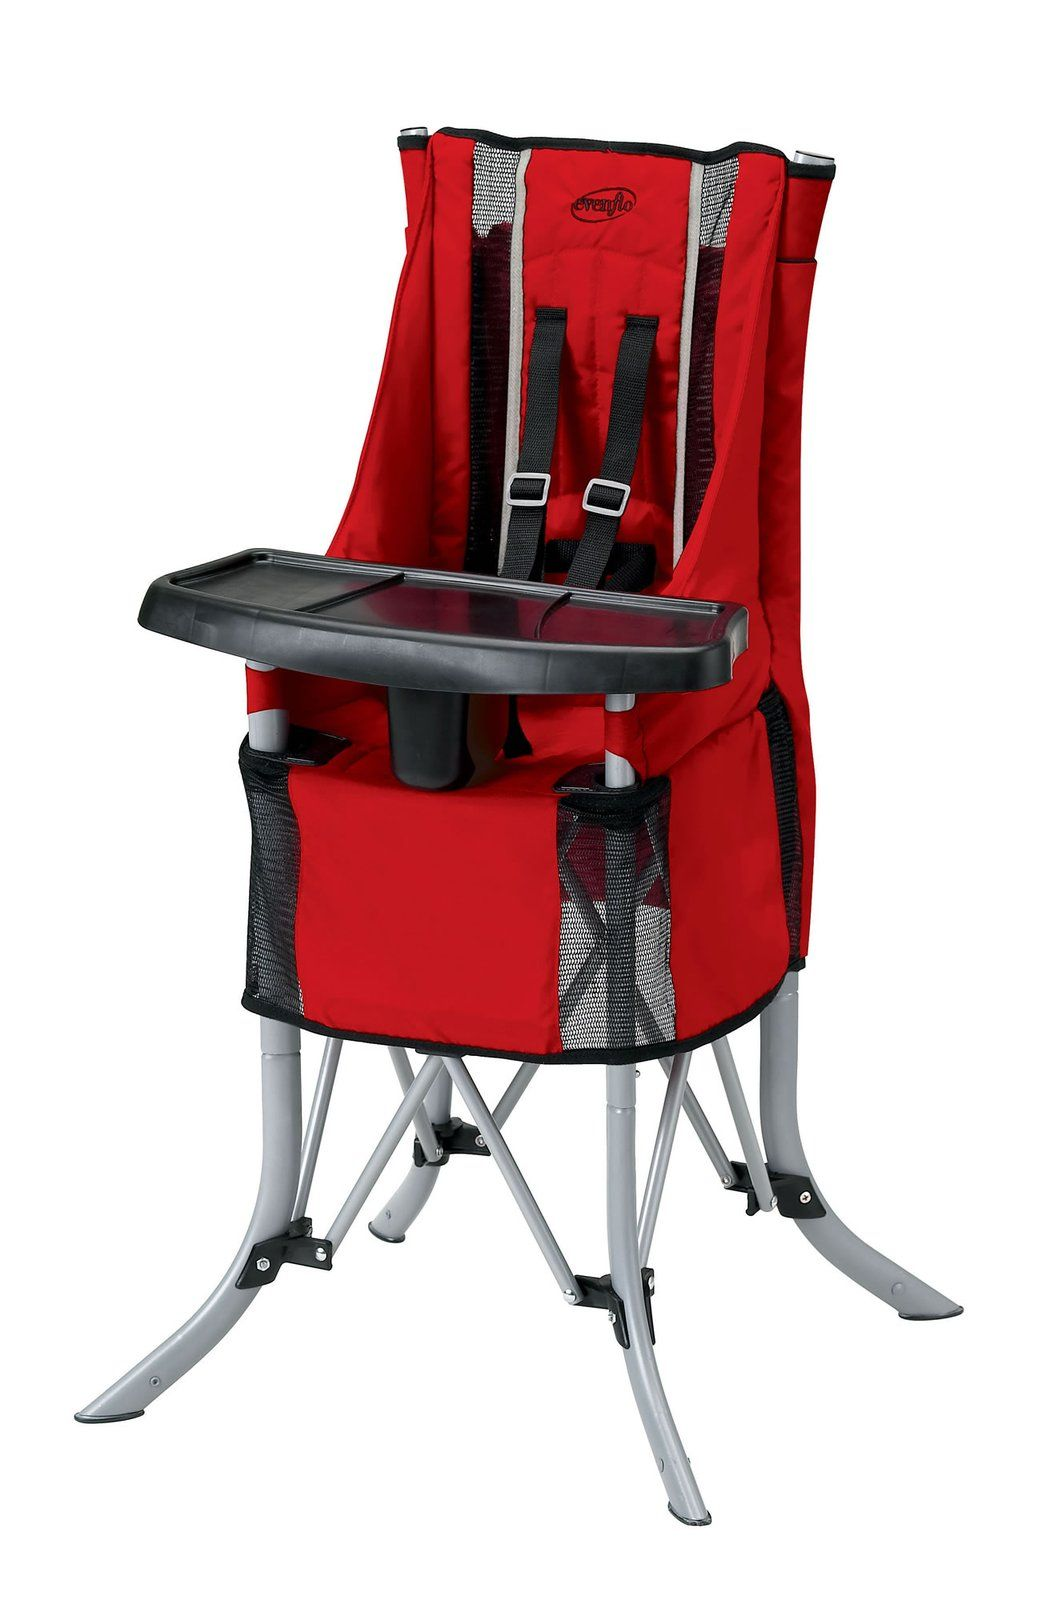 Evenflo Babygo Travel High Chair Red Best Price